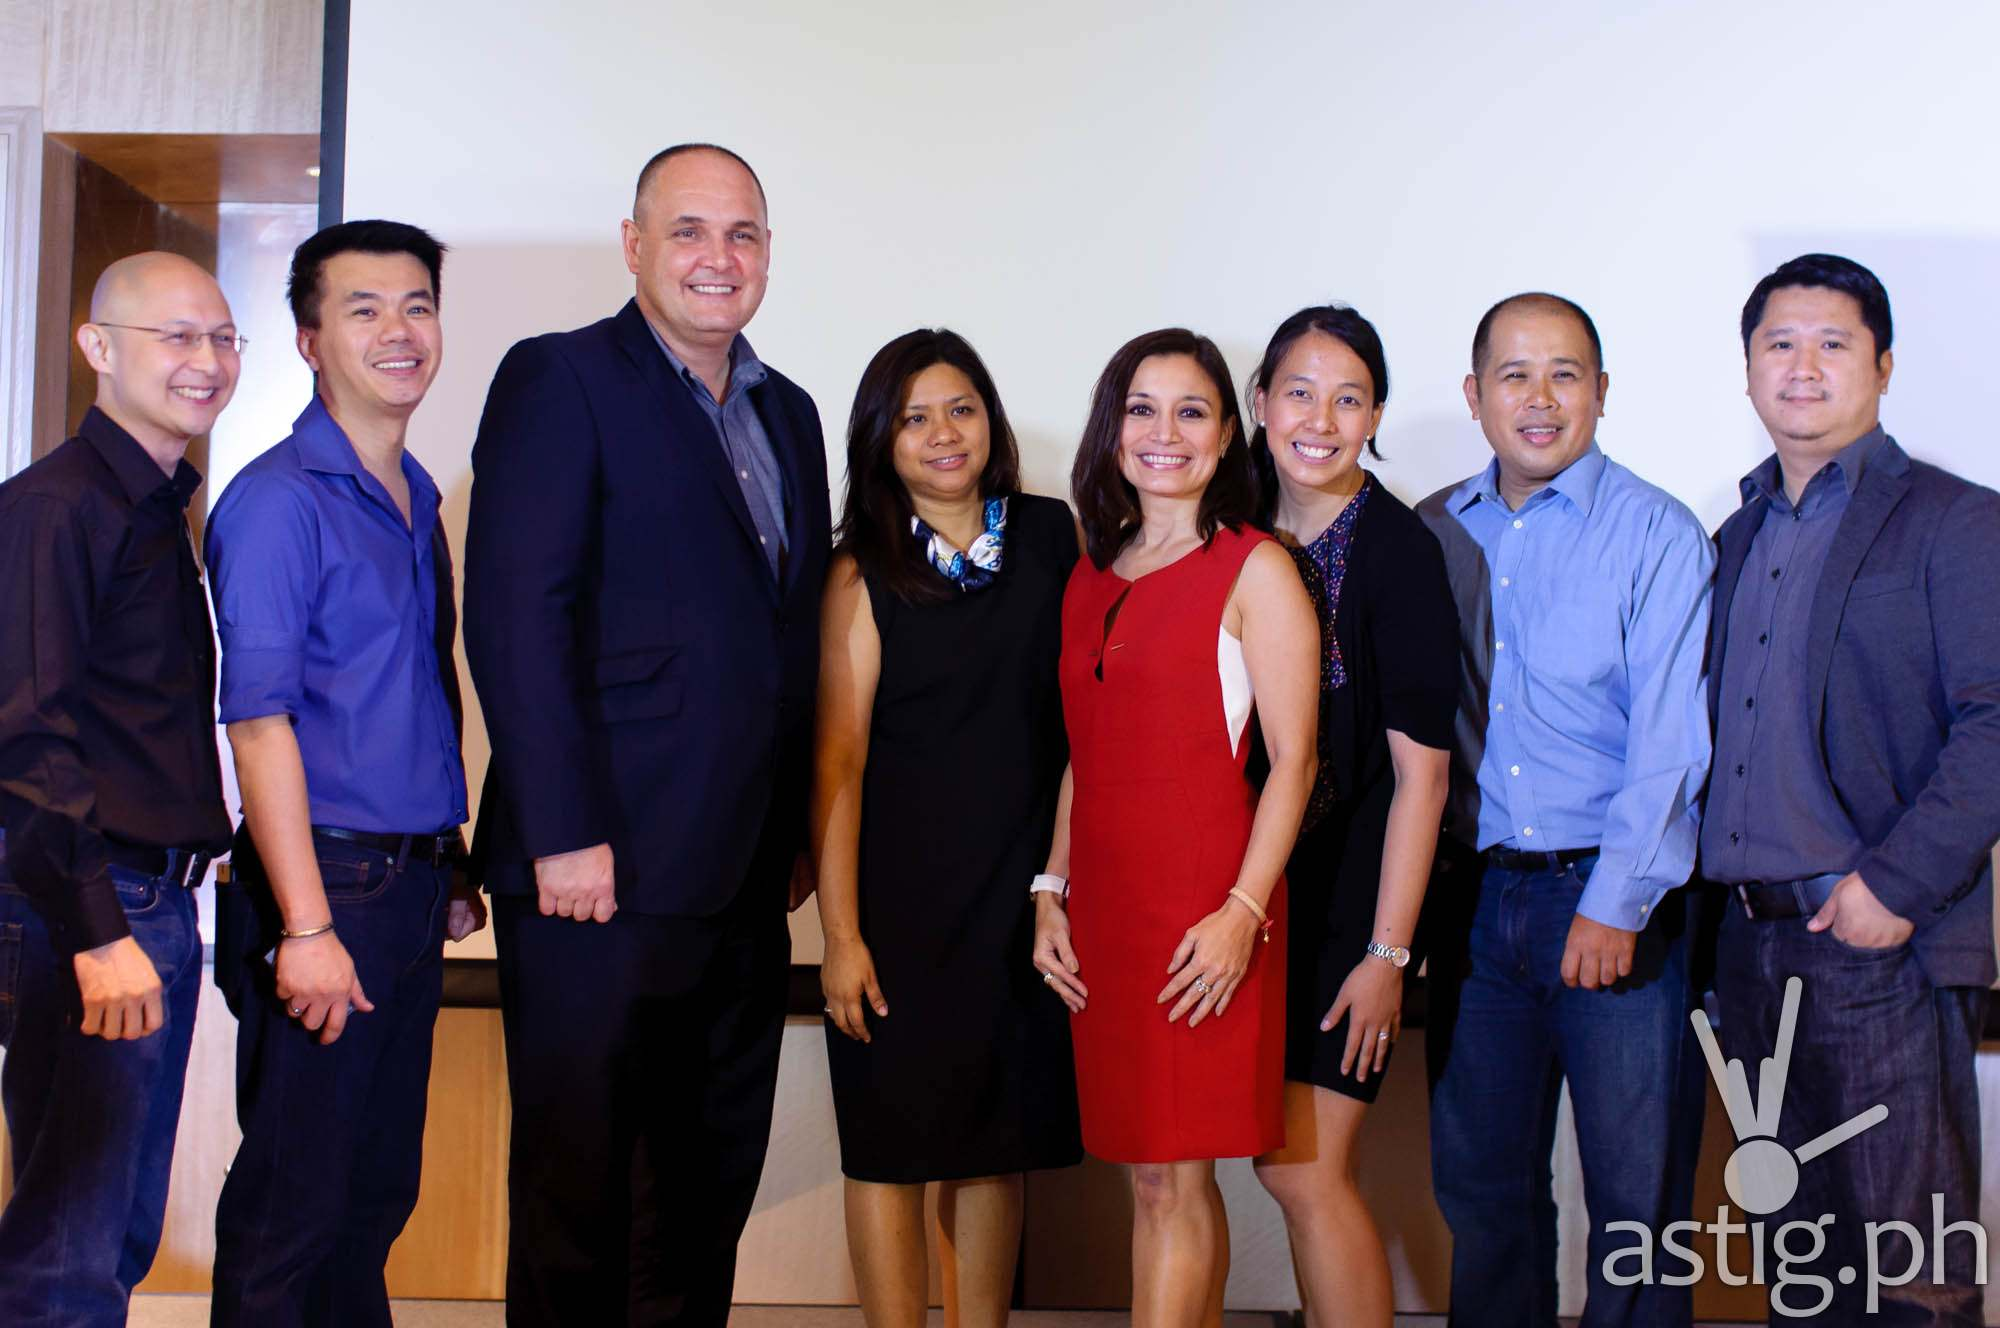 Intel Philippines executives